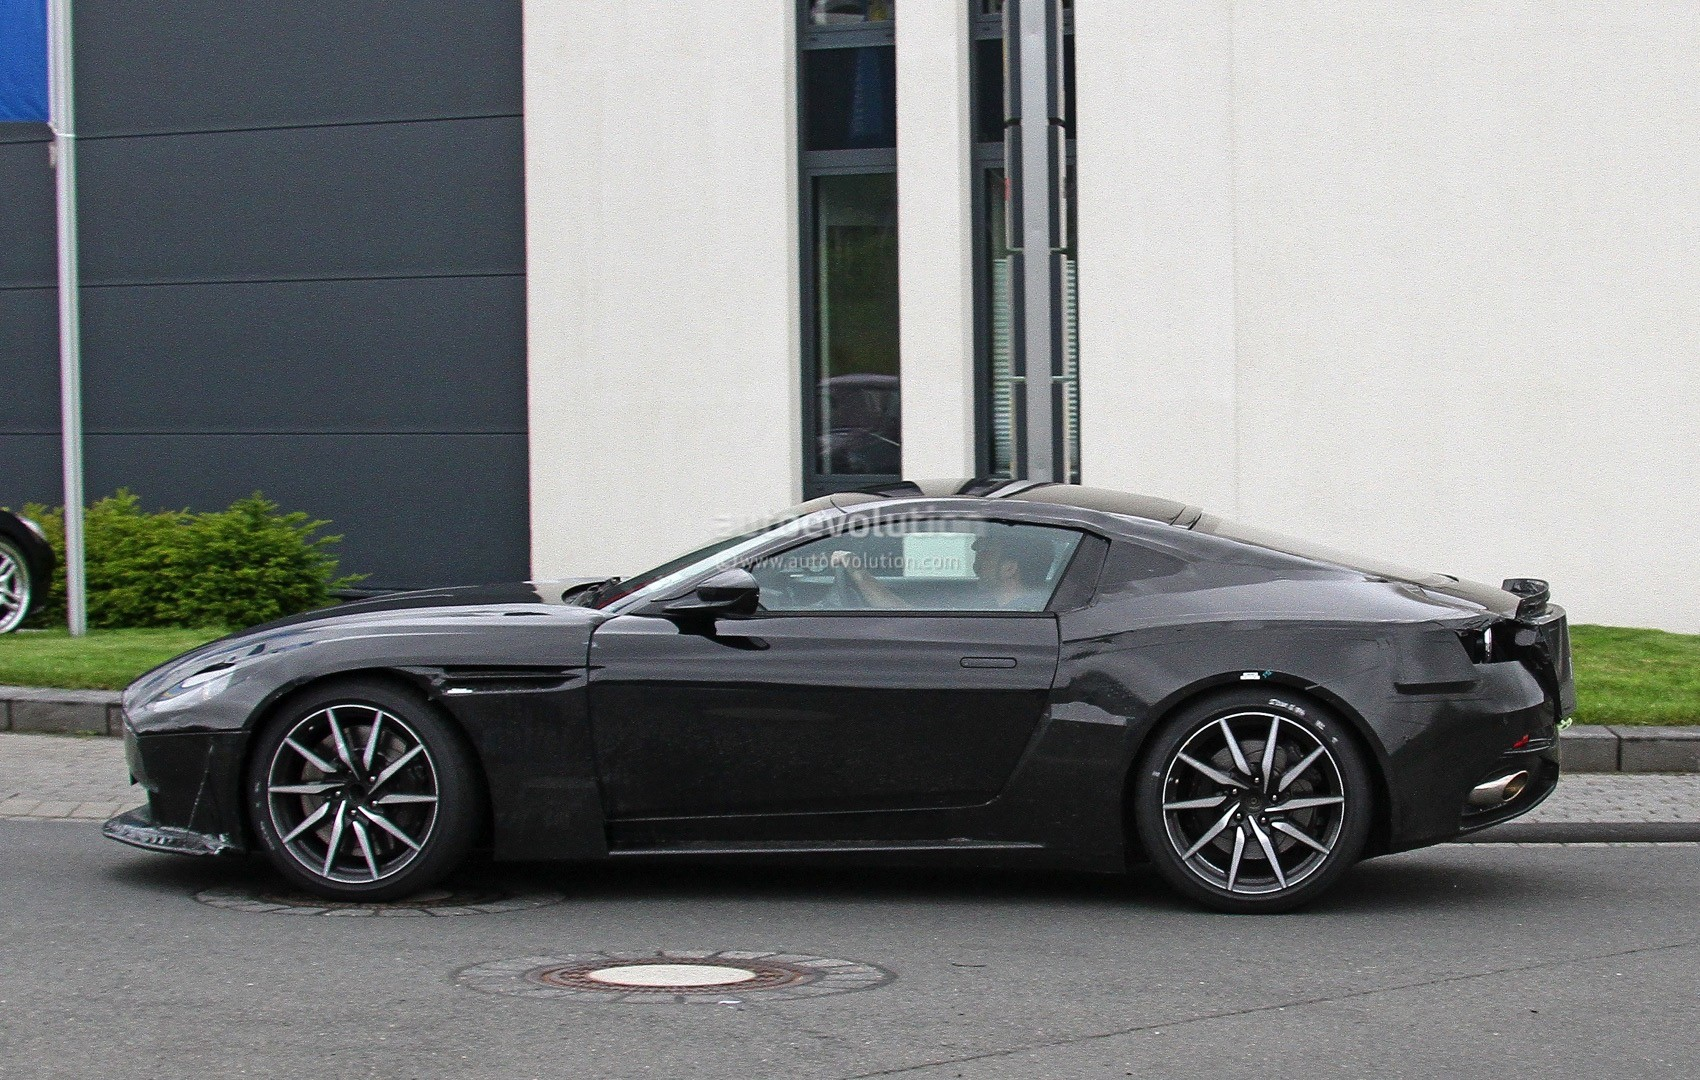 2018 aston martin v8 vantage design to be a cross between db10 and vulcan autoevolution. Black Bedroom Furniture Sets. Home Design Ideas